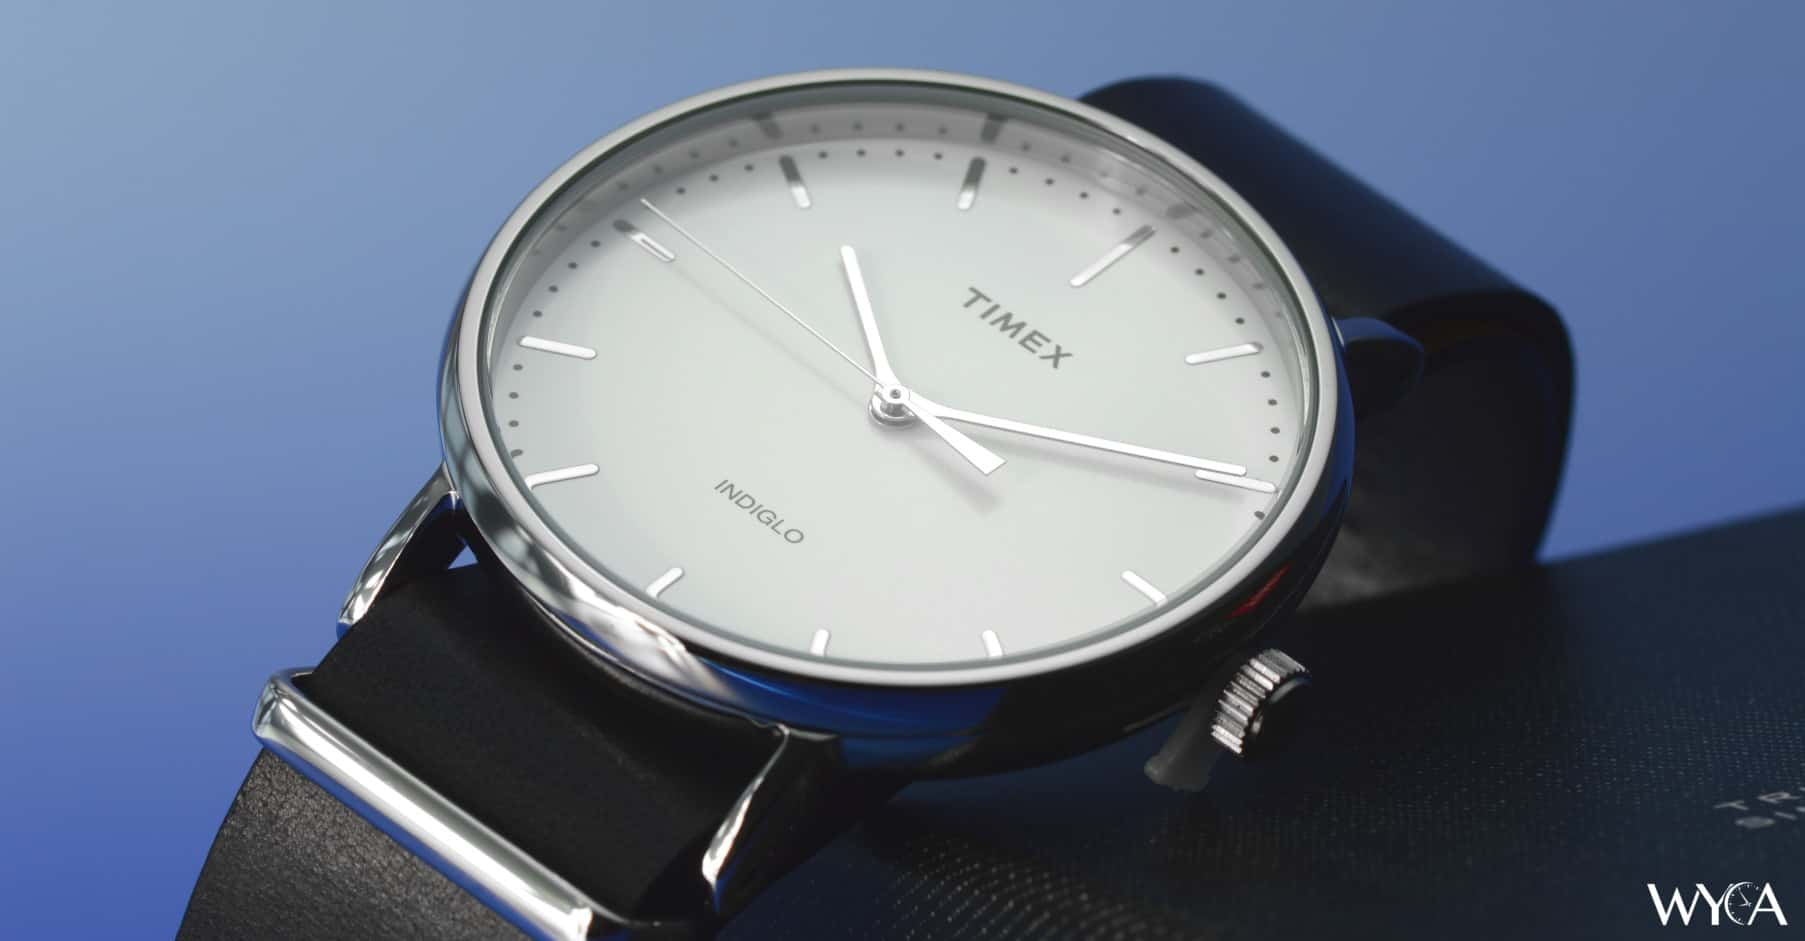 Timex weekender fairfield review watch reviews wyca The fairfield